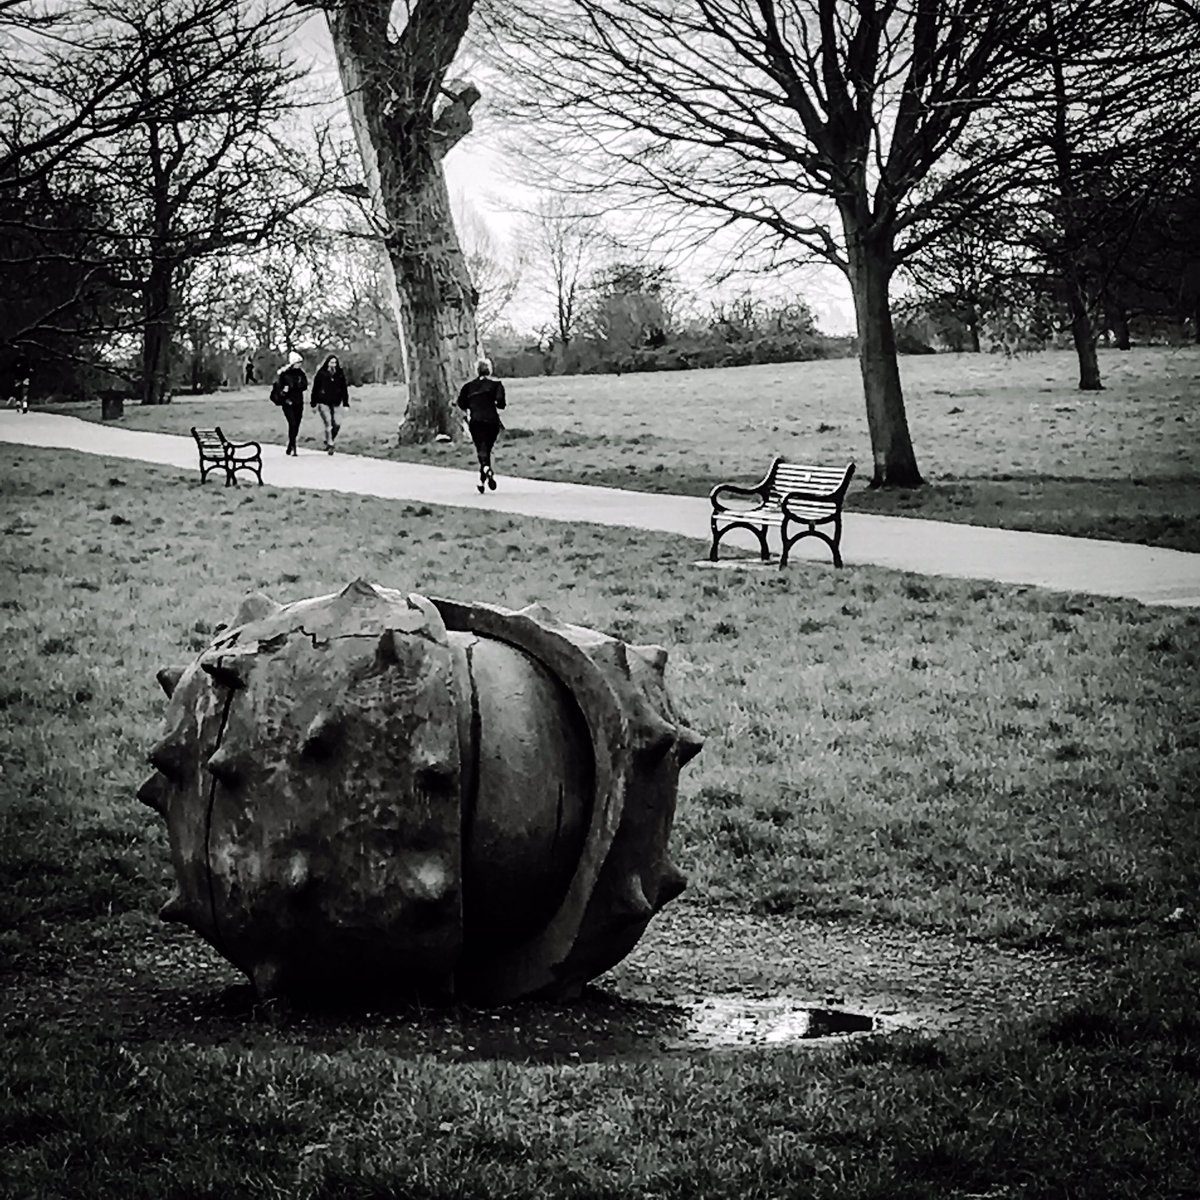 Love discovering new spaces and places ... and even finding a rather large conker #brockwellpark #southlondon #london #urbanphotography #photography #londonphotography